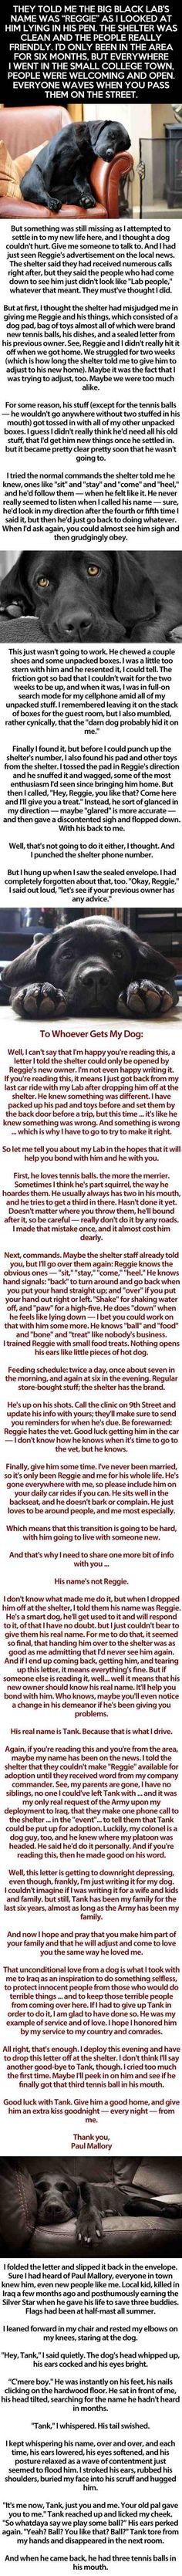 TANK, THE DOG - this will make you tear up (long pic) GREAT blurb (fiction or not?), about tank commander that loses his life overseas for his country. His dog (Tank) put up for adoption, etc.